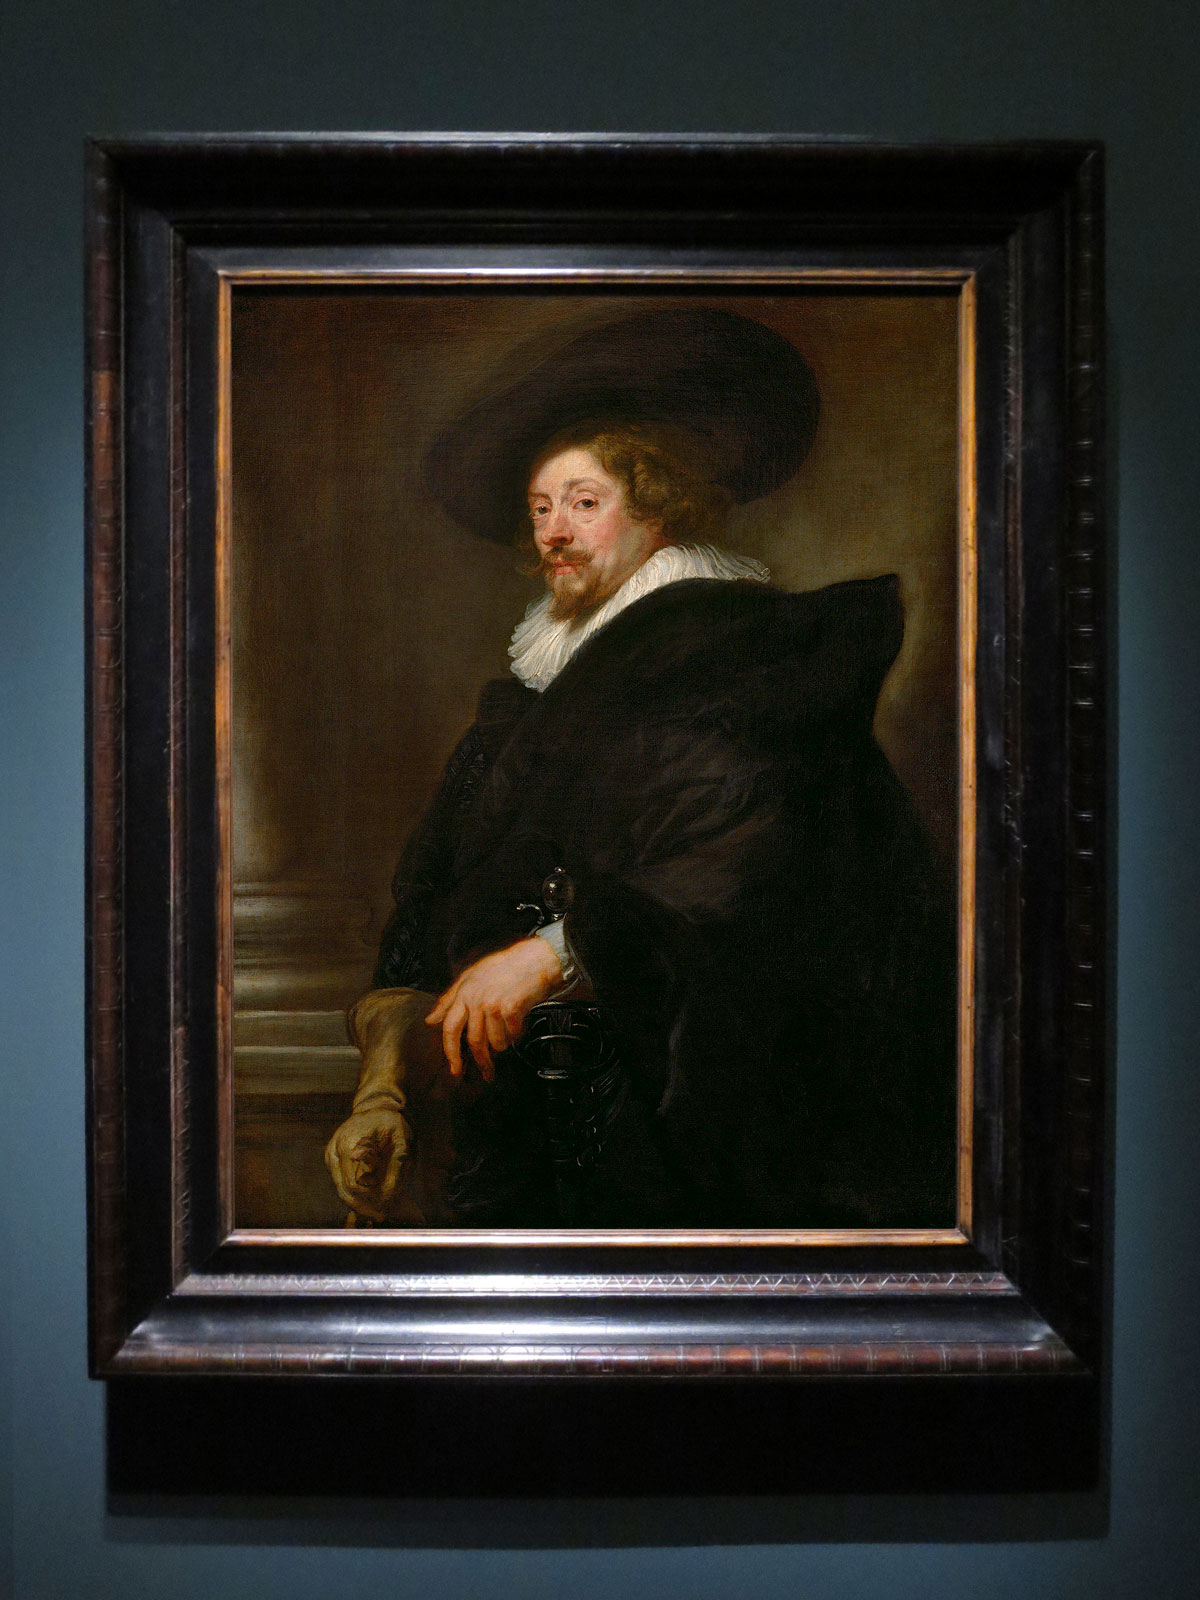 Peter Paul Rubens, Self-Portrait, 1638-39, Kunsthistorisches Museum Wien